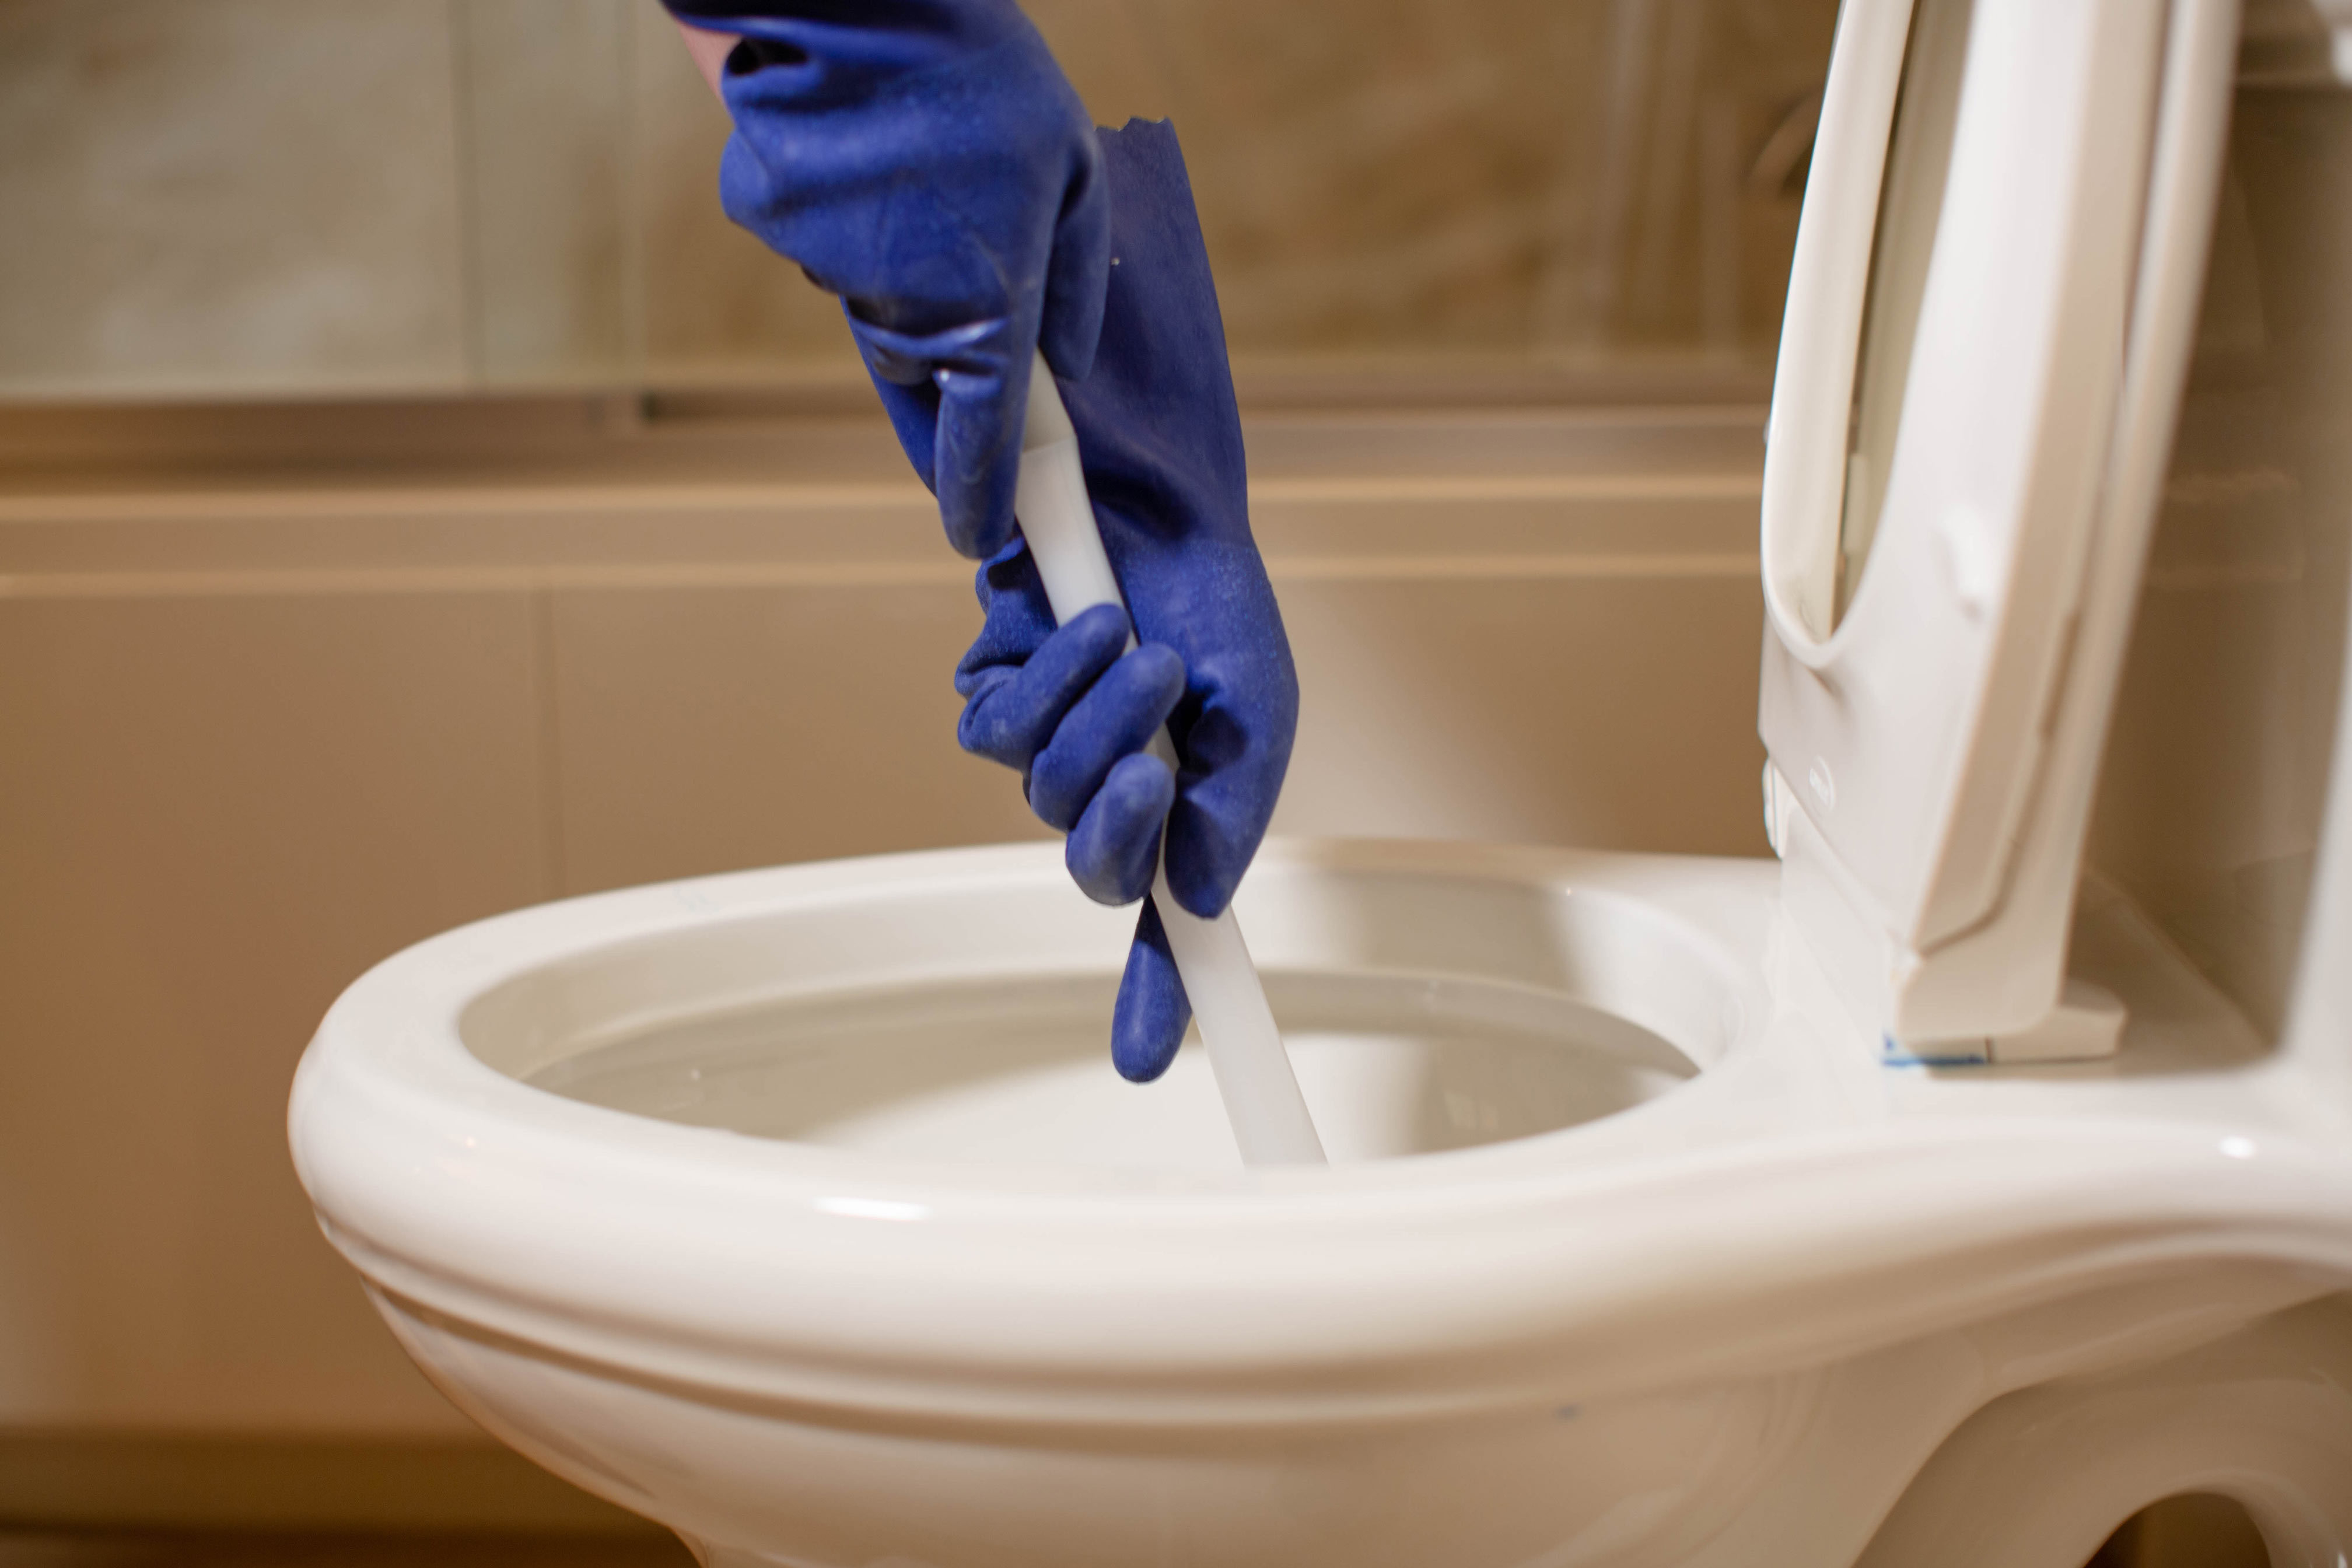 Person using a plunger in a toilet